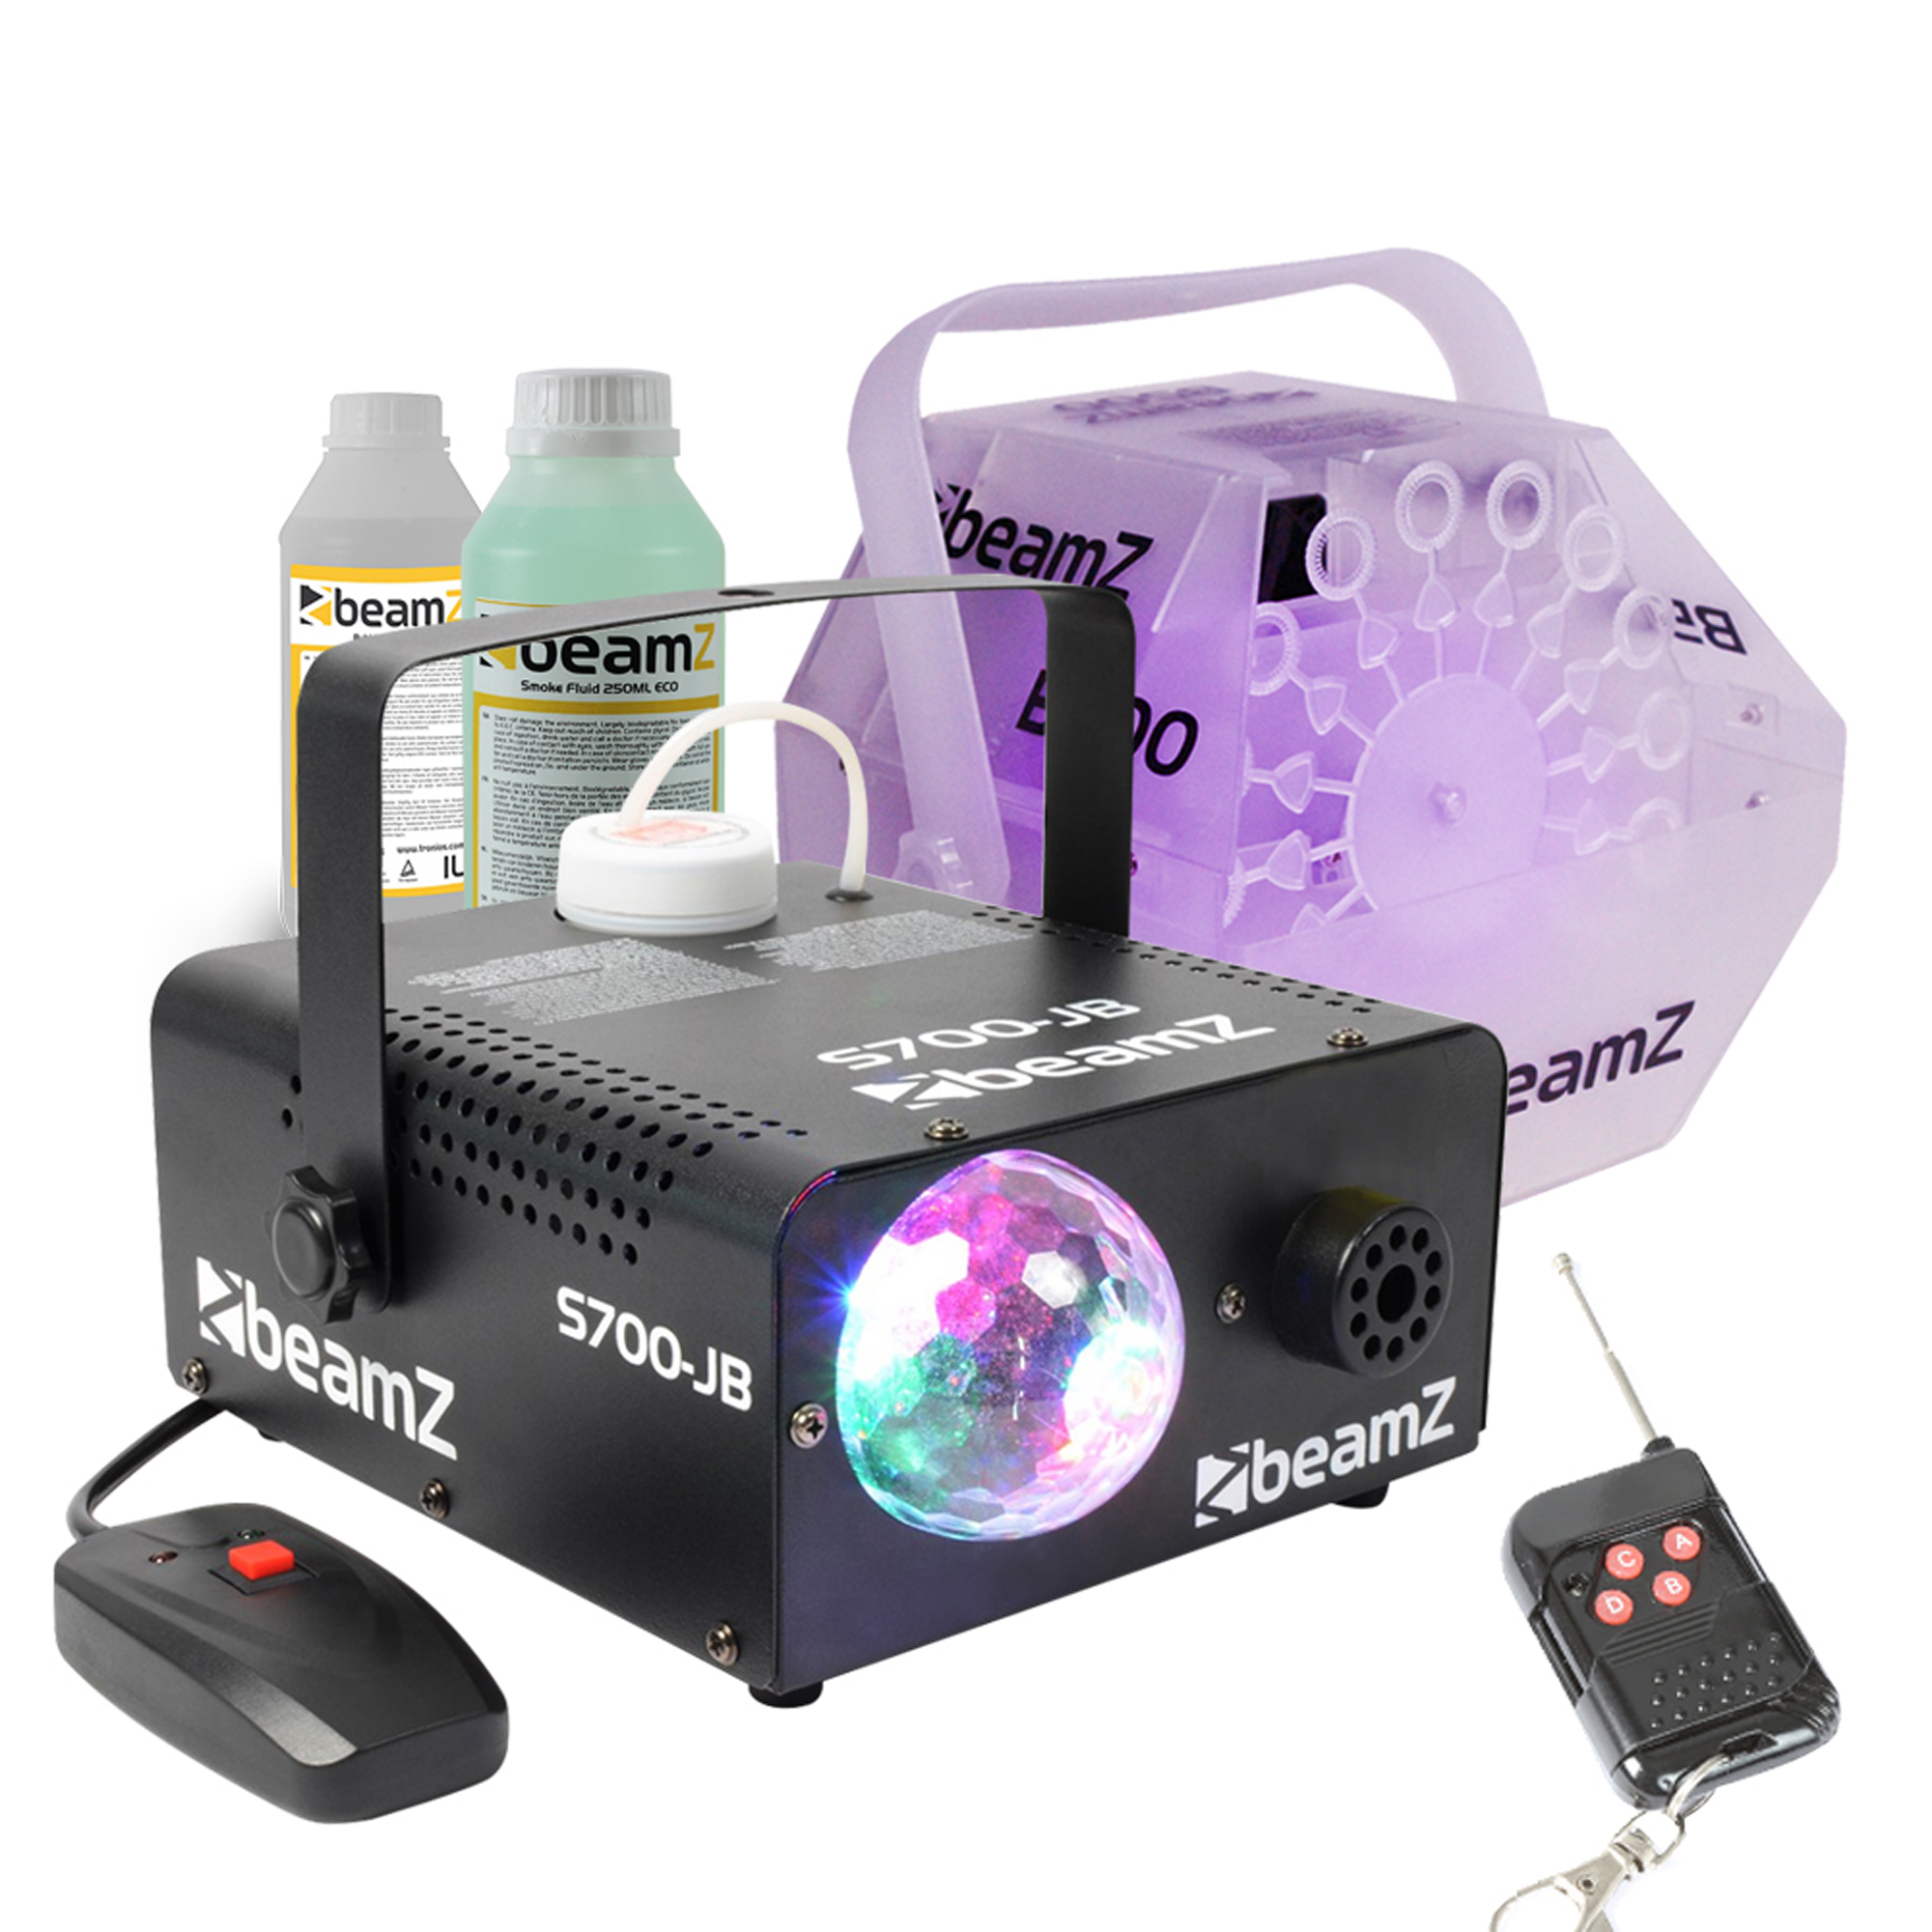 Halloween Party Package with BeamZ B500LED Bubble Machine, S700 Smoke Machine, Fluids & Balloon